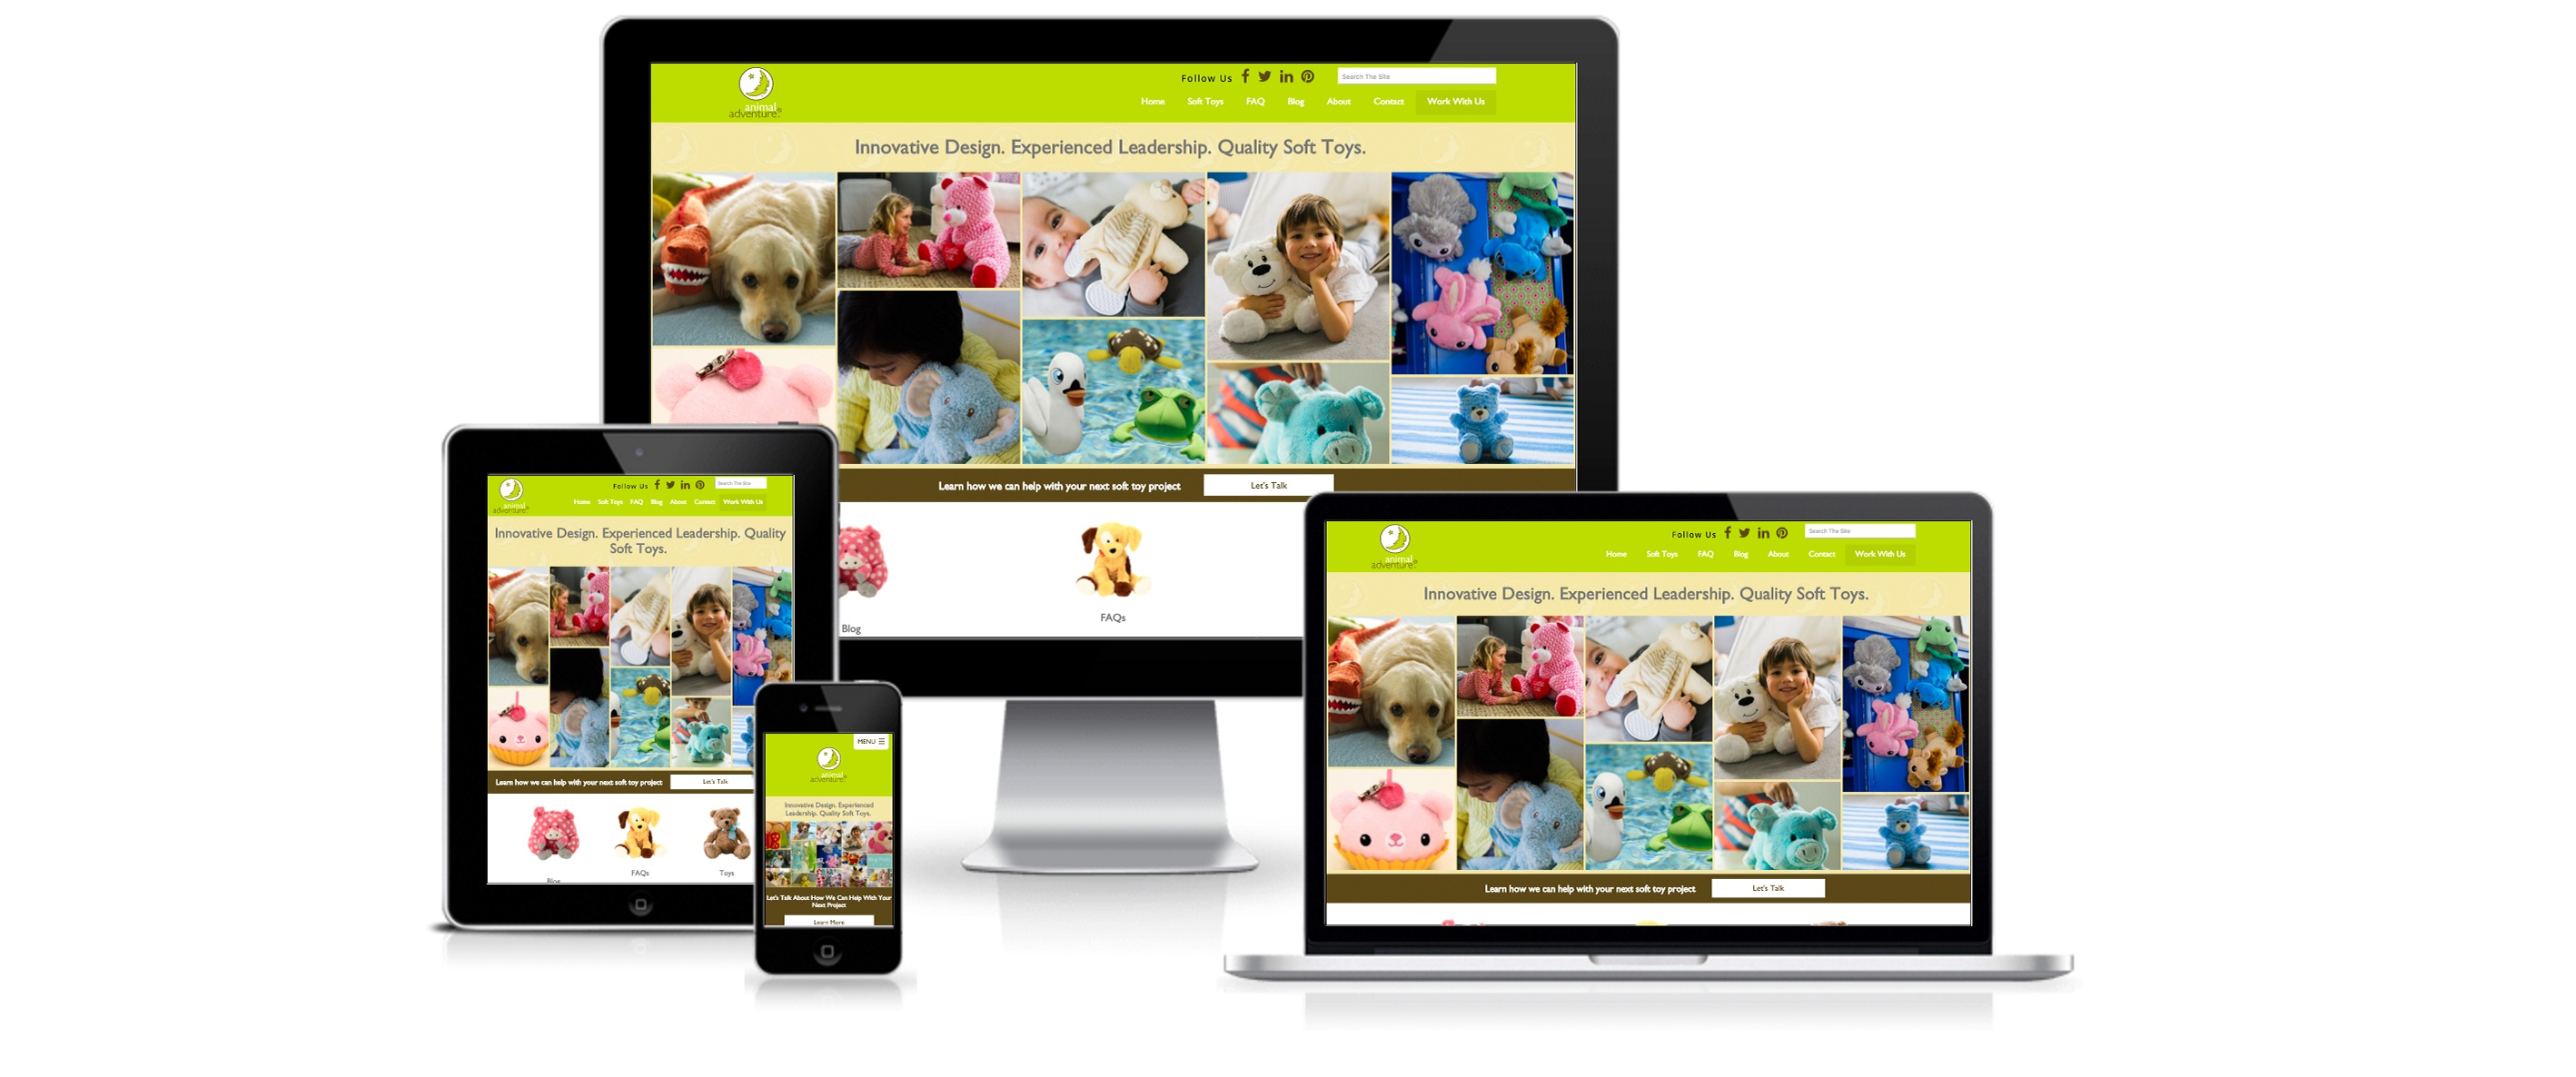 HubSpot Website Design for Animal Adventure - Created By Spoke